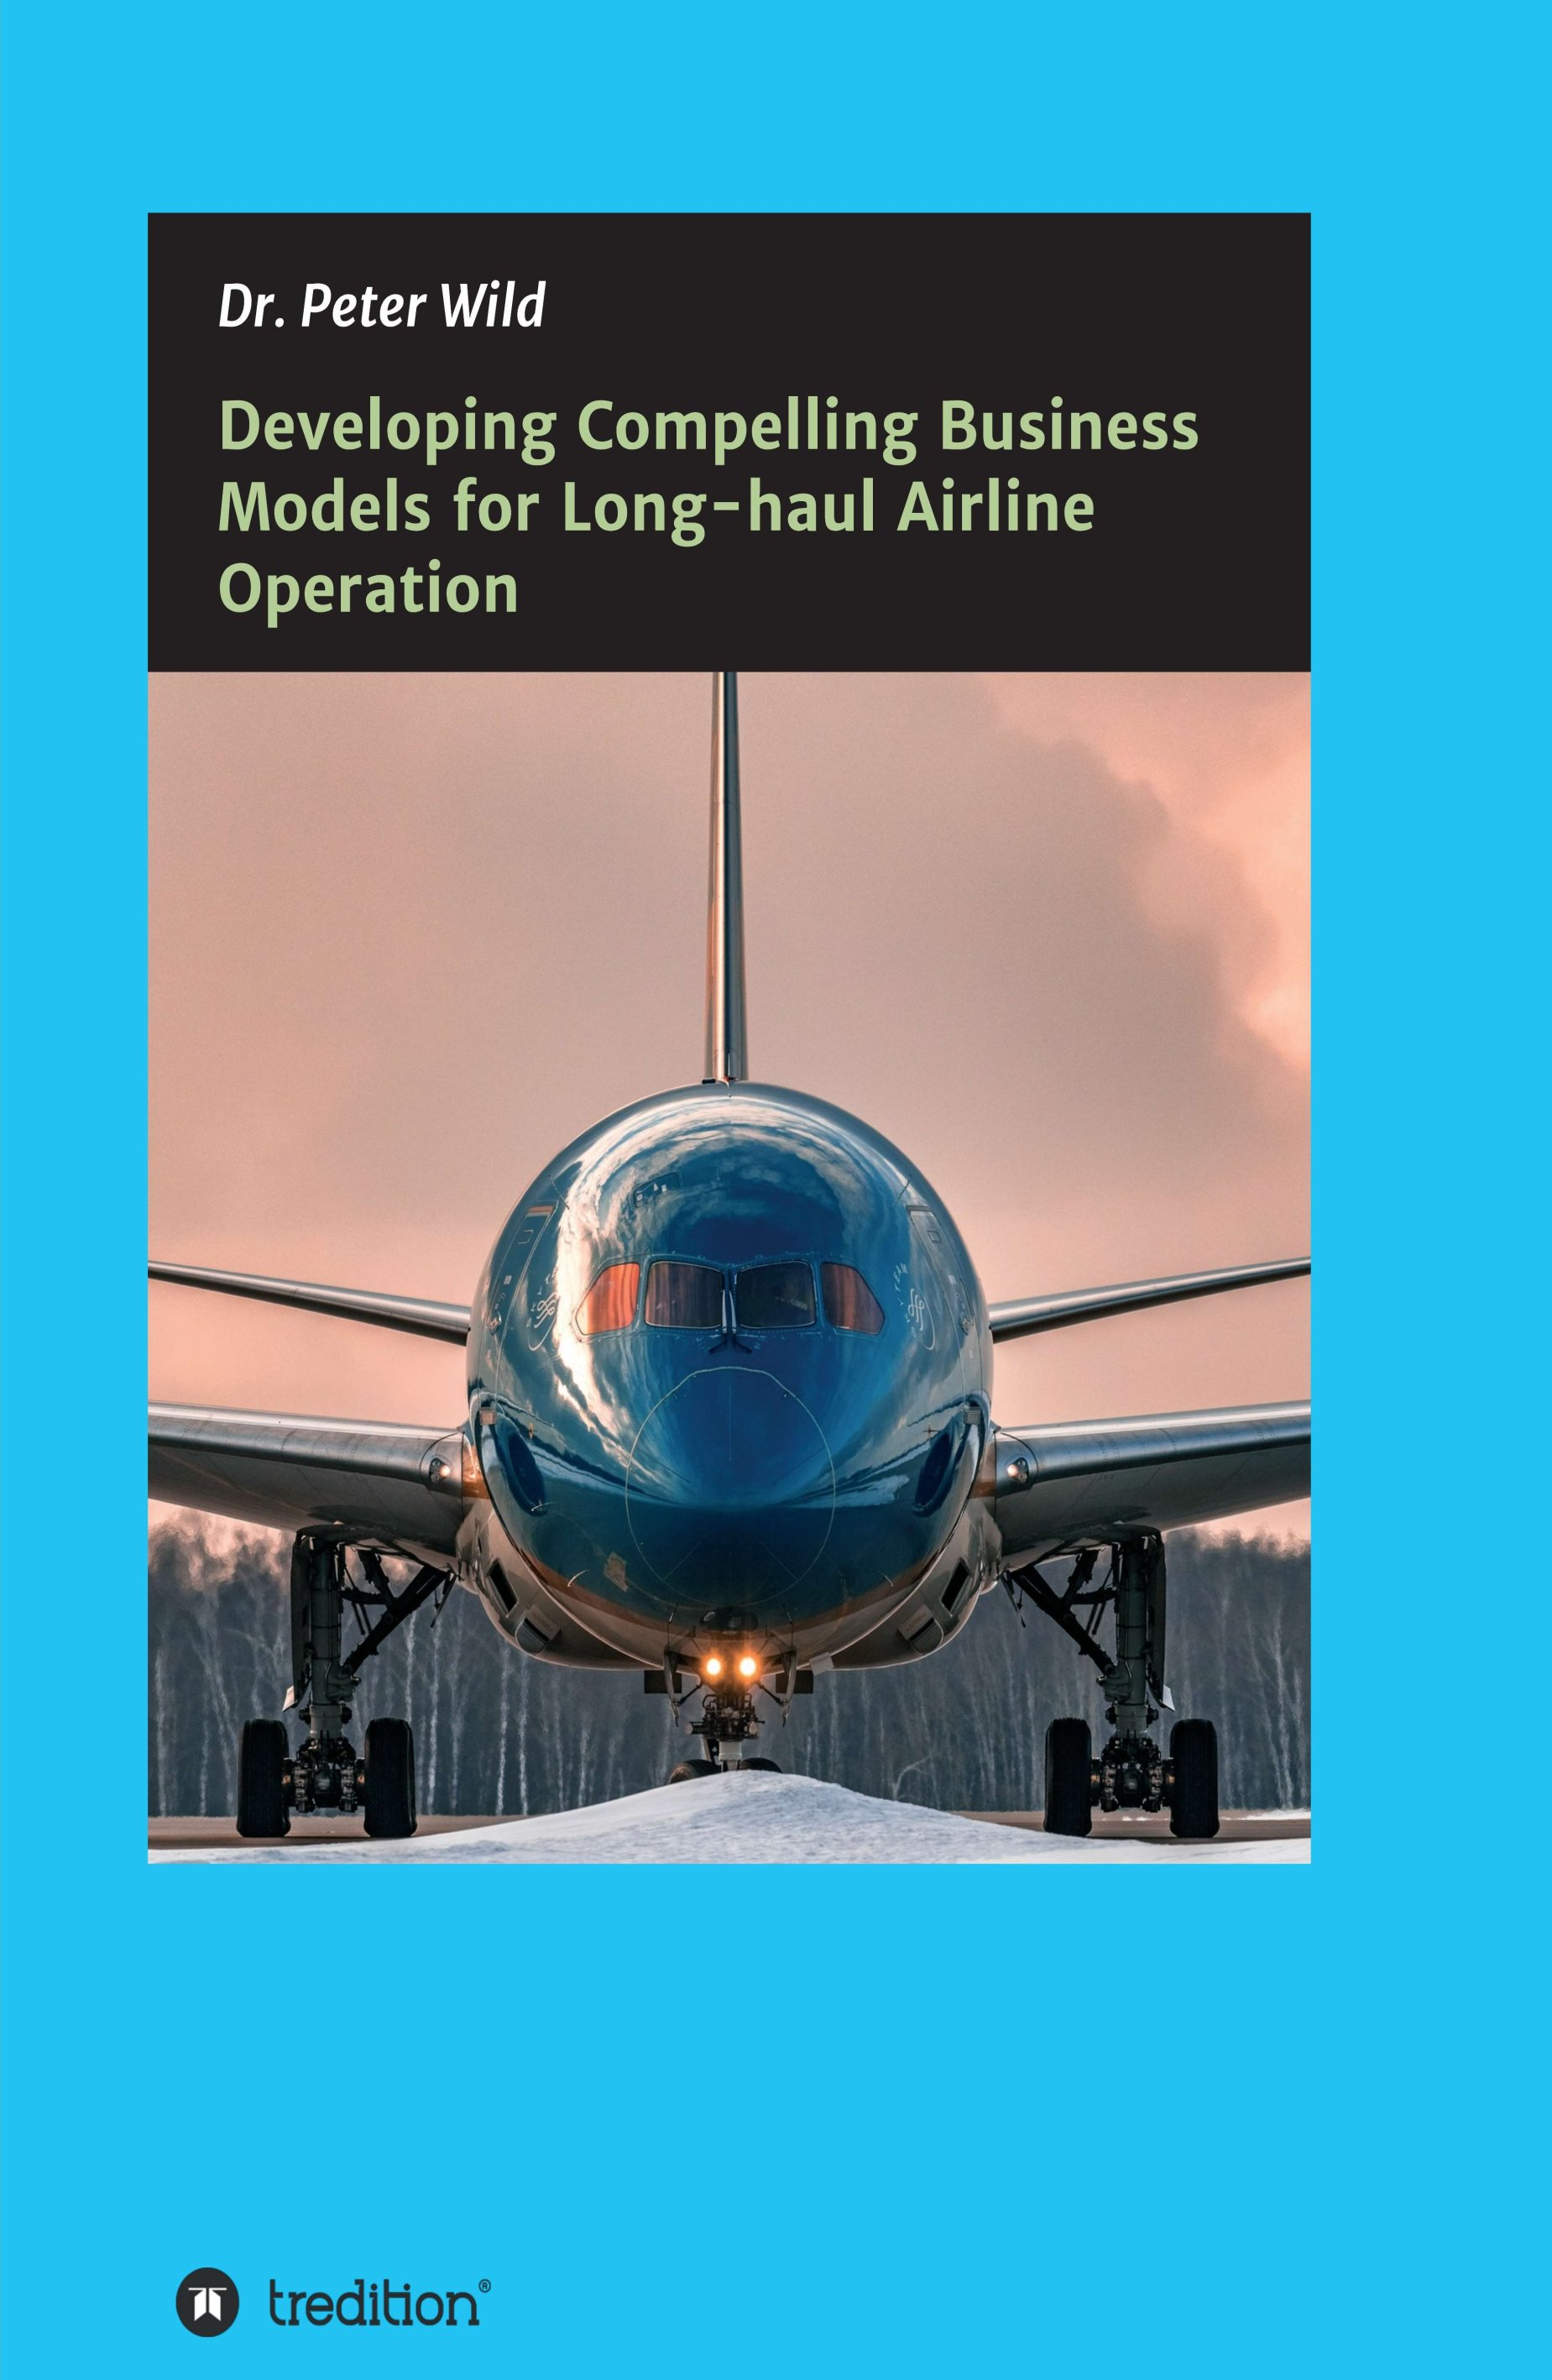 Developing Compelling Business Models for Long-haul Airline Operation - Insights into a struggling industry